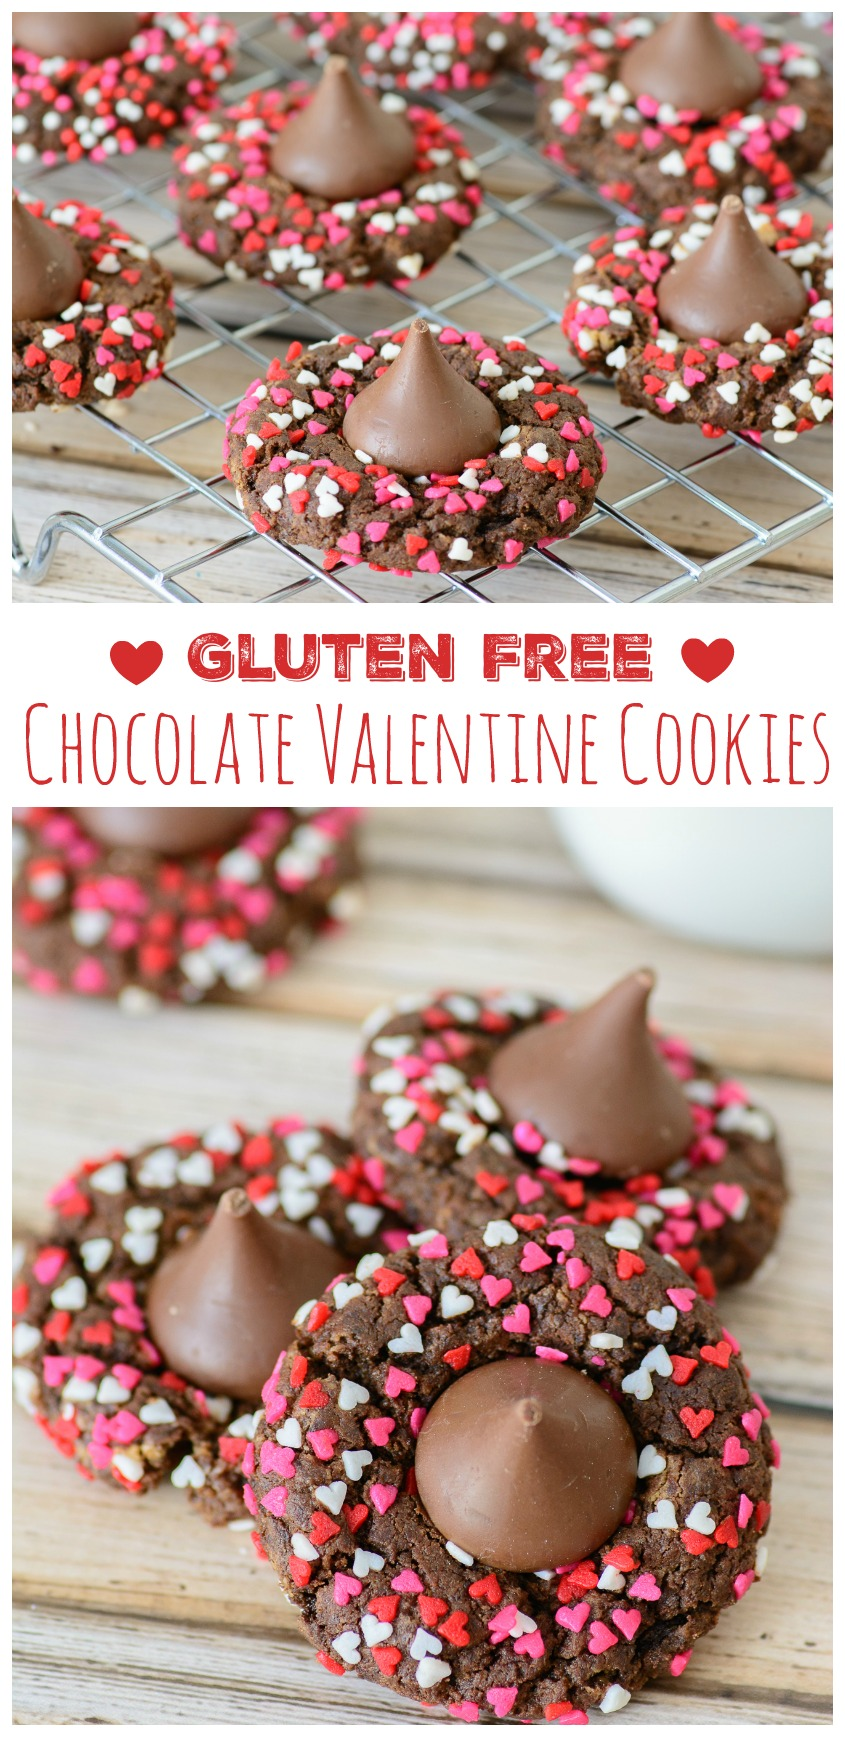 Better For You Gluten Free Chocolate Valentine Cookies. These festive, delicious and gluten free Valentine's cookies are a great way to satisfy your sweet tooth without all the guilt. YUM!!